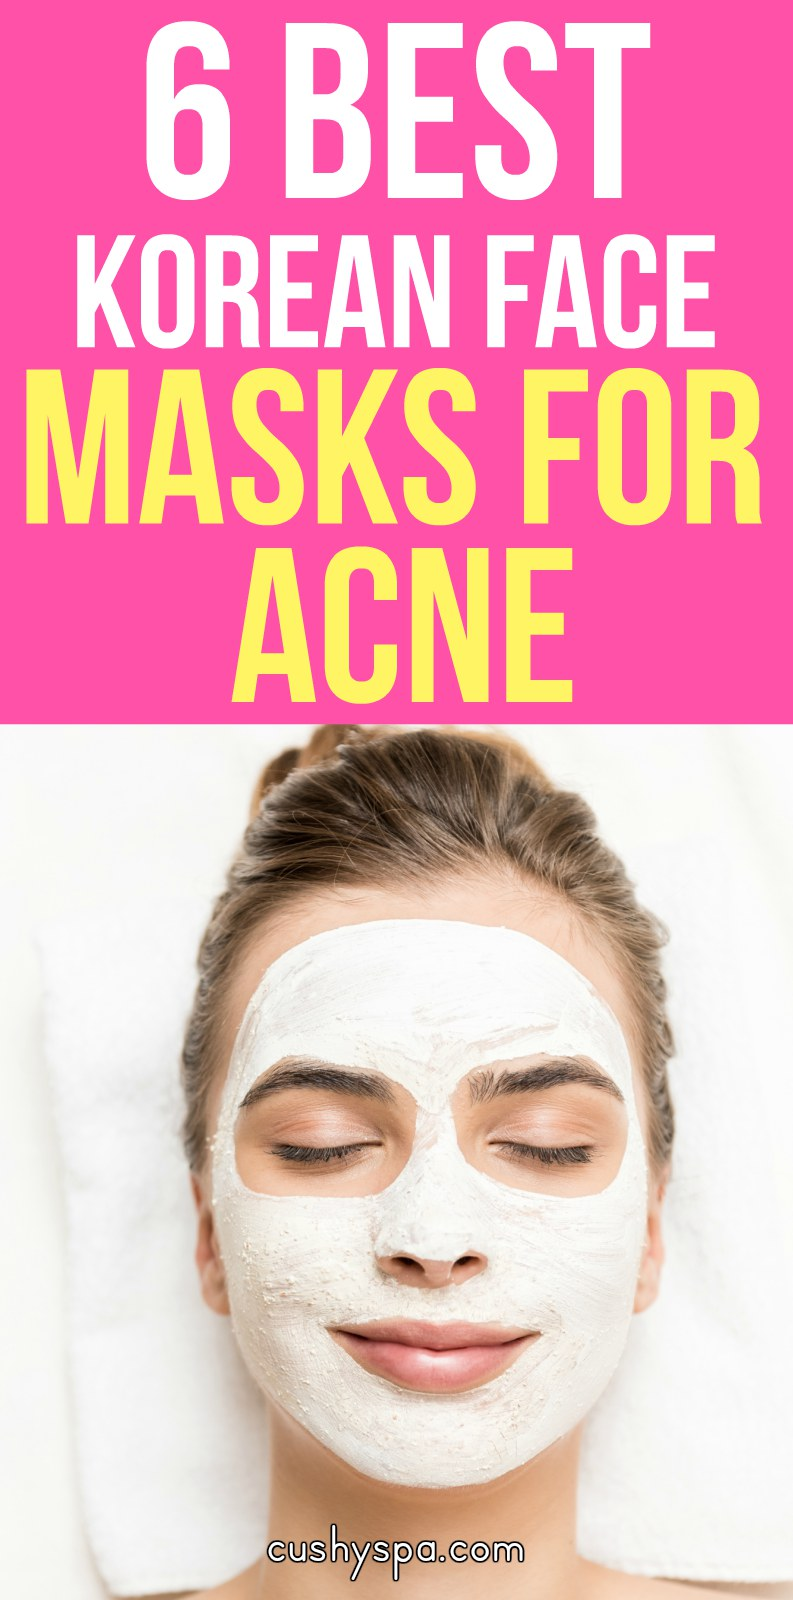 A fan of Korean masks? Need a face mask for acne? Want to get rid of acne? Here are 6 best Korean face masks for acne! (acne treatment) #acnetreatment #acnetips #acnecare